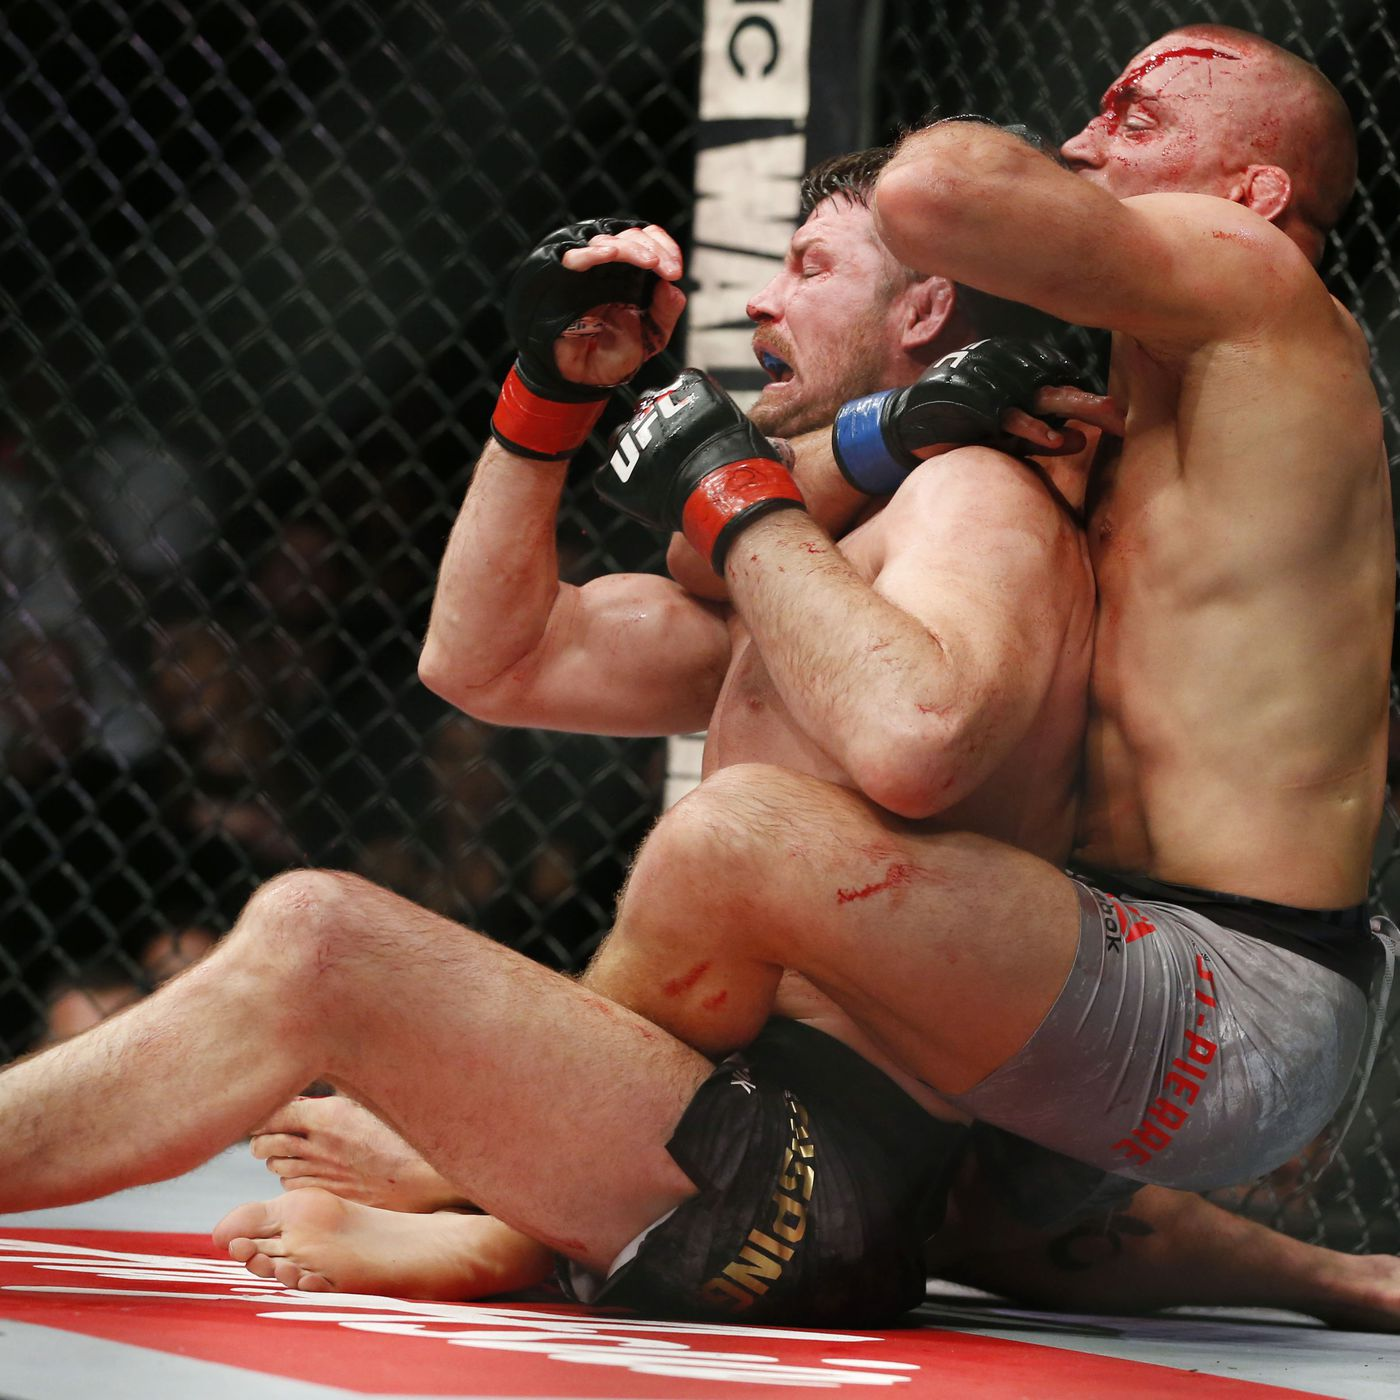 UFC/MMA 'Events of the Year' 2017 - Top 5 List - MMAmania.com